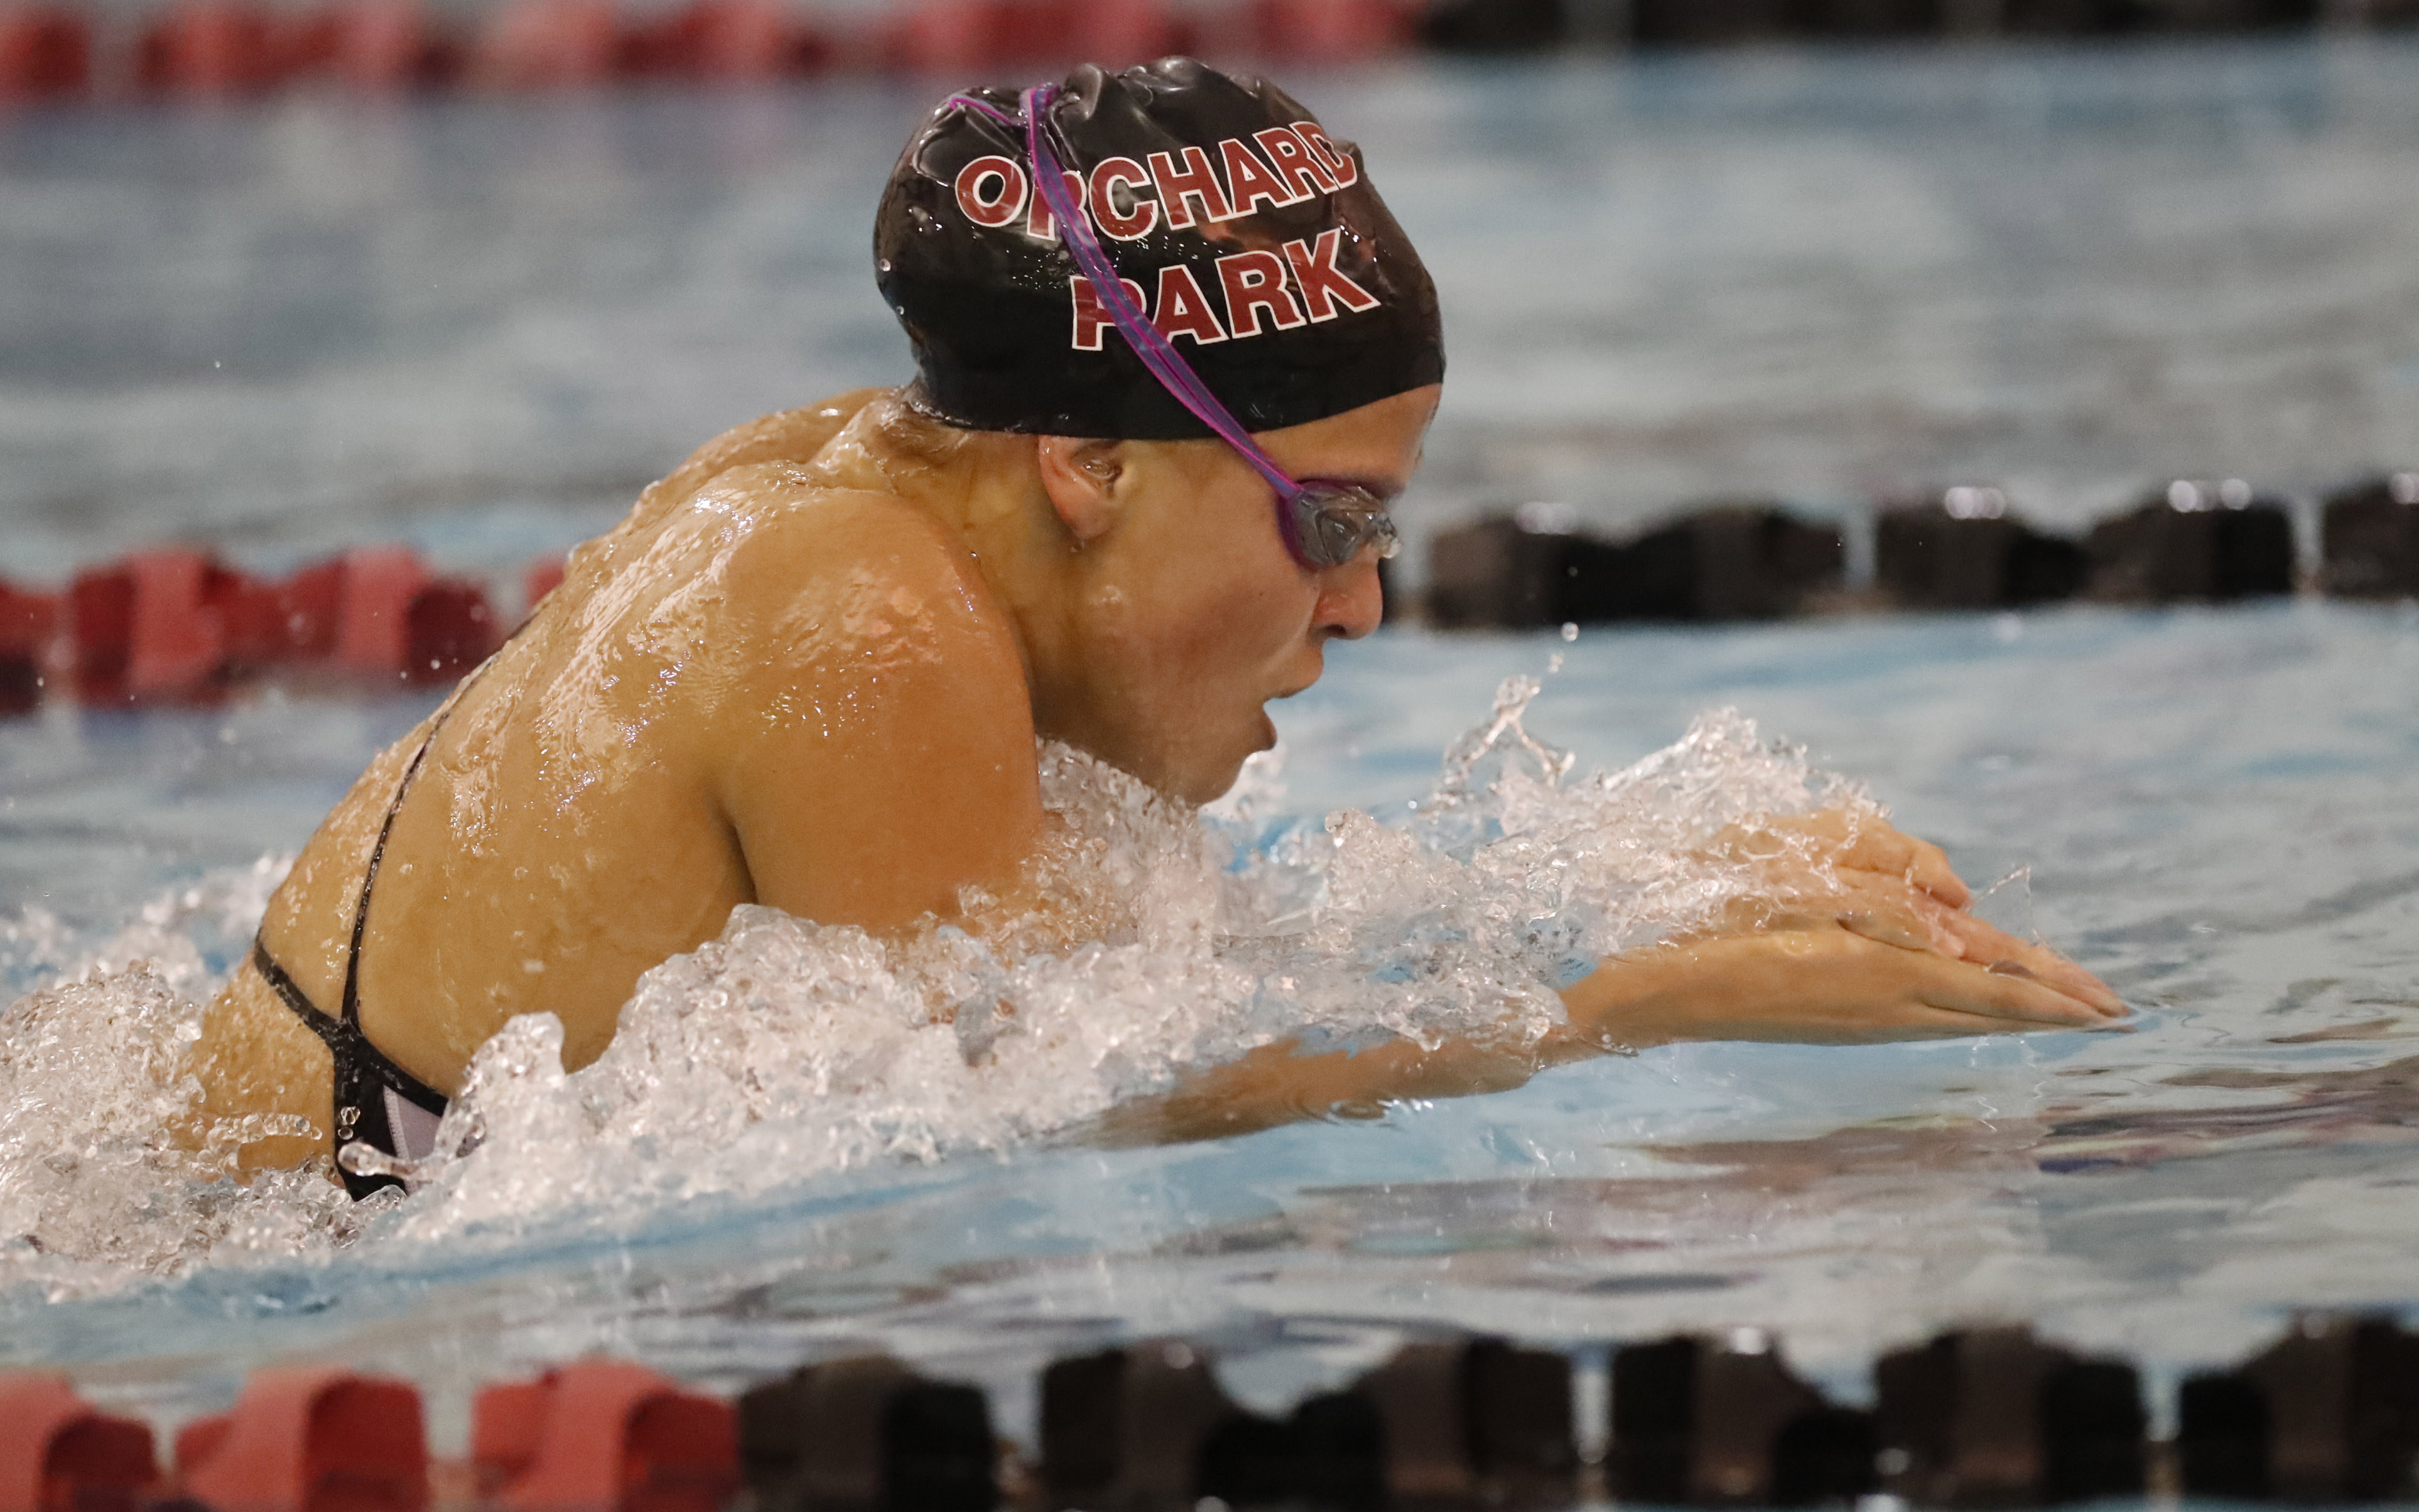 Orchard Park's Olvia Sapio swims to a first-place finish in the 200 individual medley with a time of 2:09.05 in a meet against Clarence on Tuesday. (Harry Scull Jr./Buffalo News)